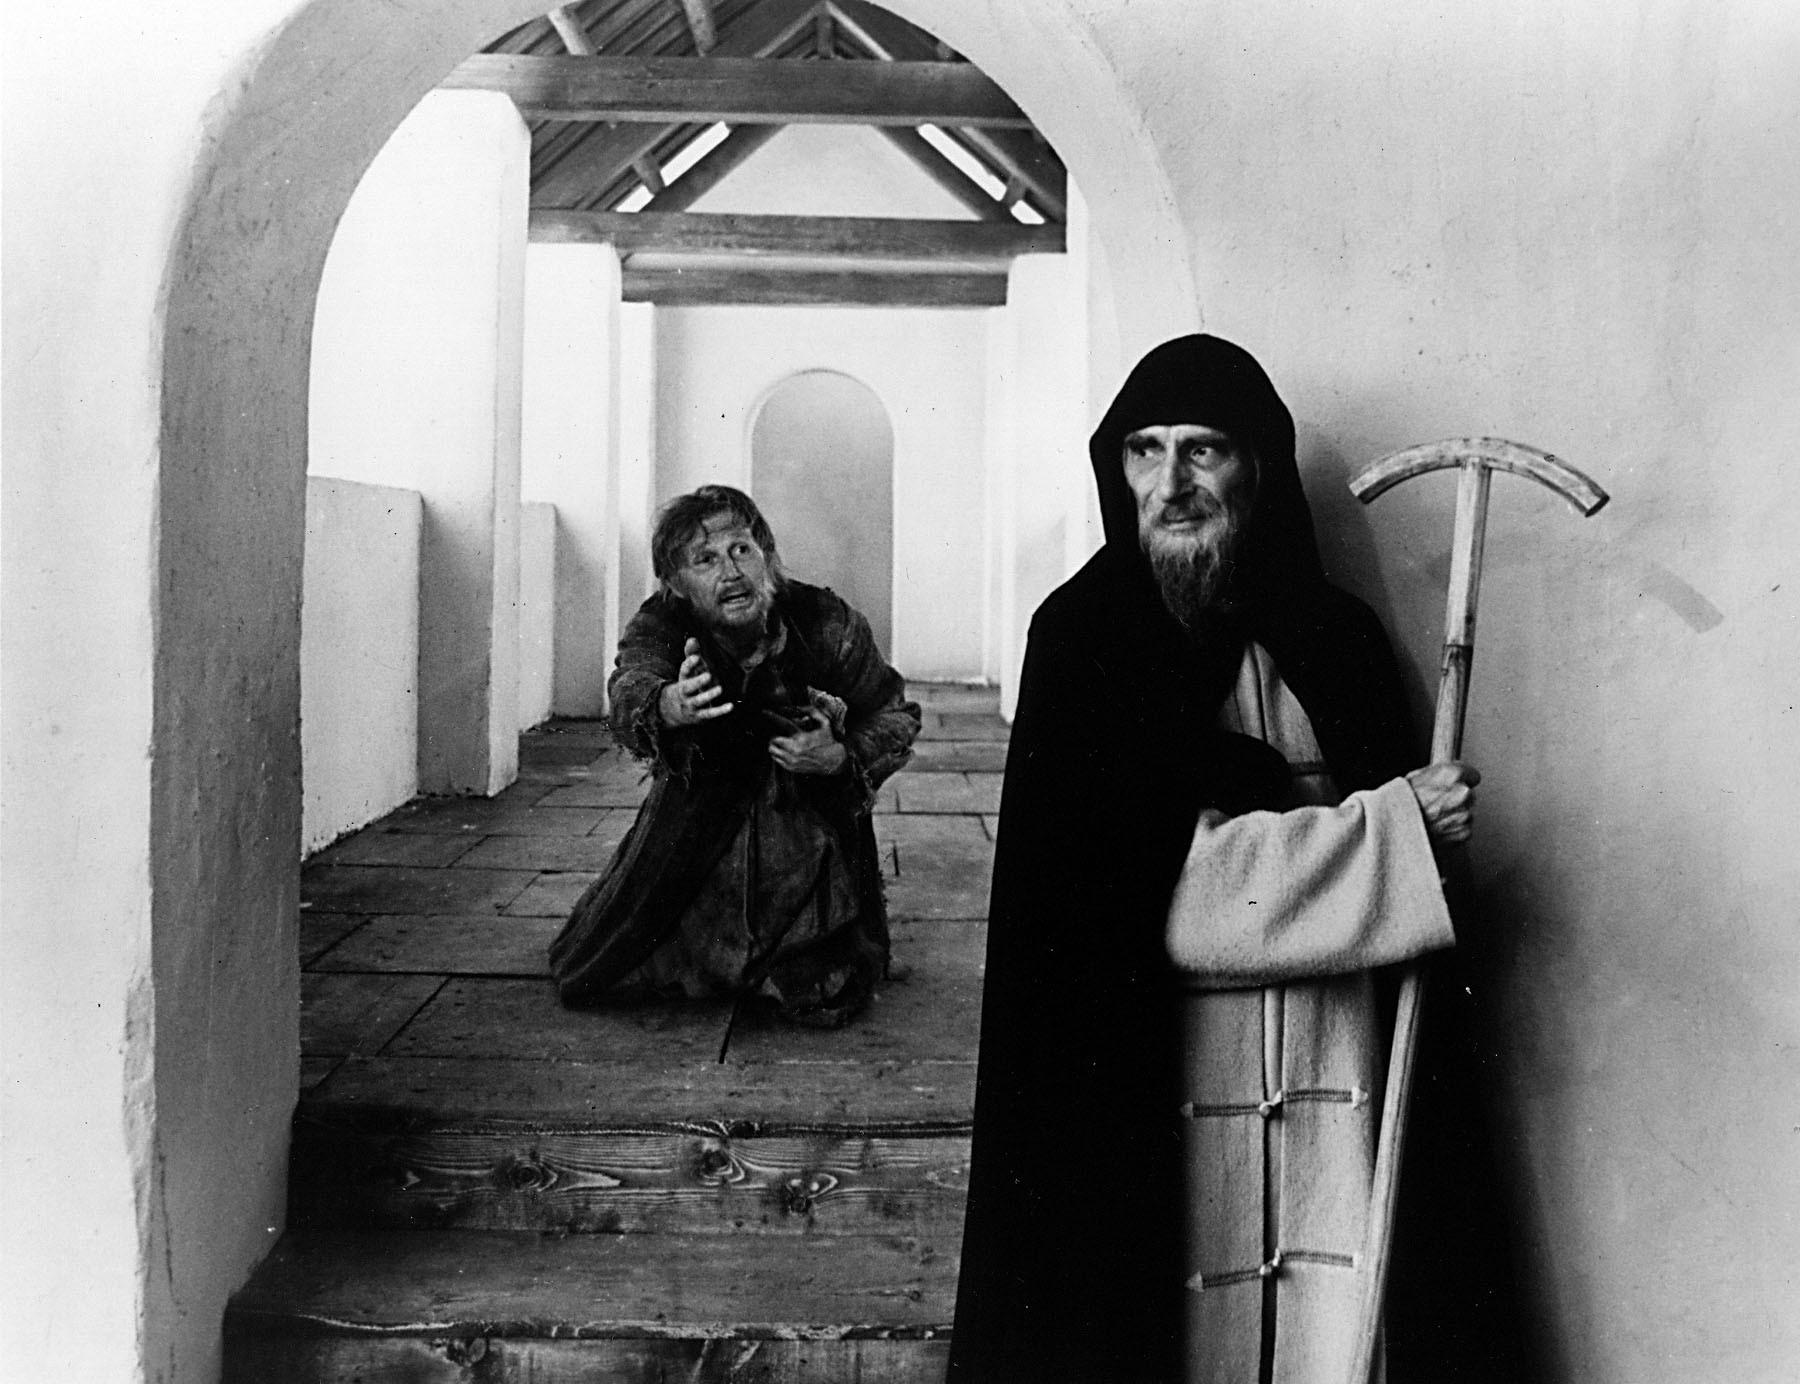 andrei rublev 2